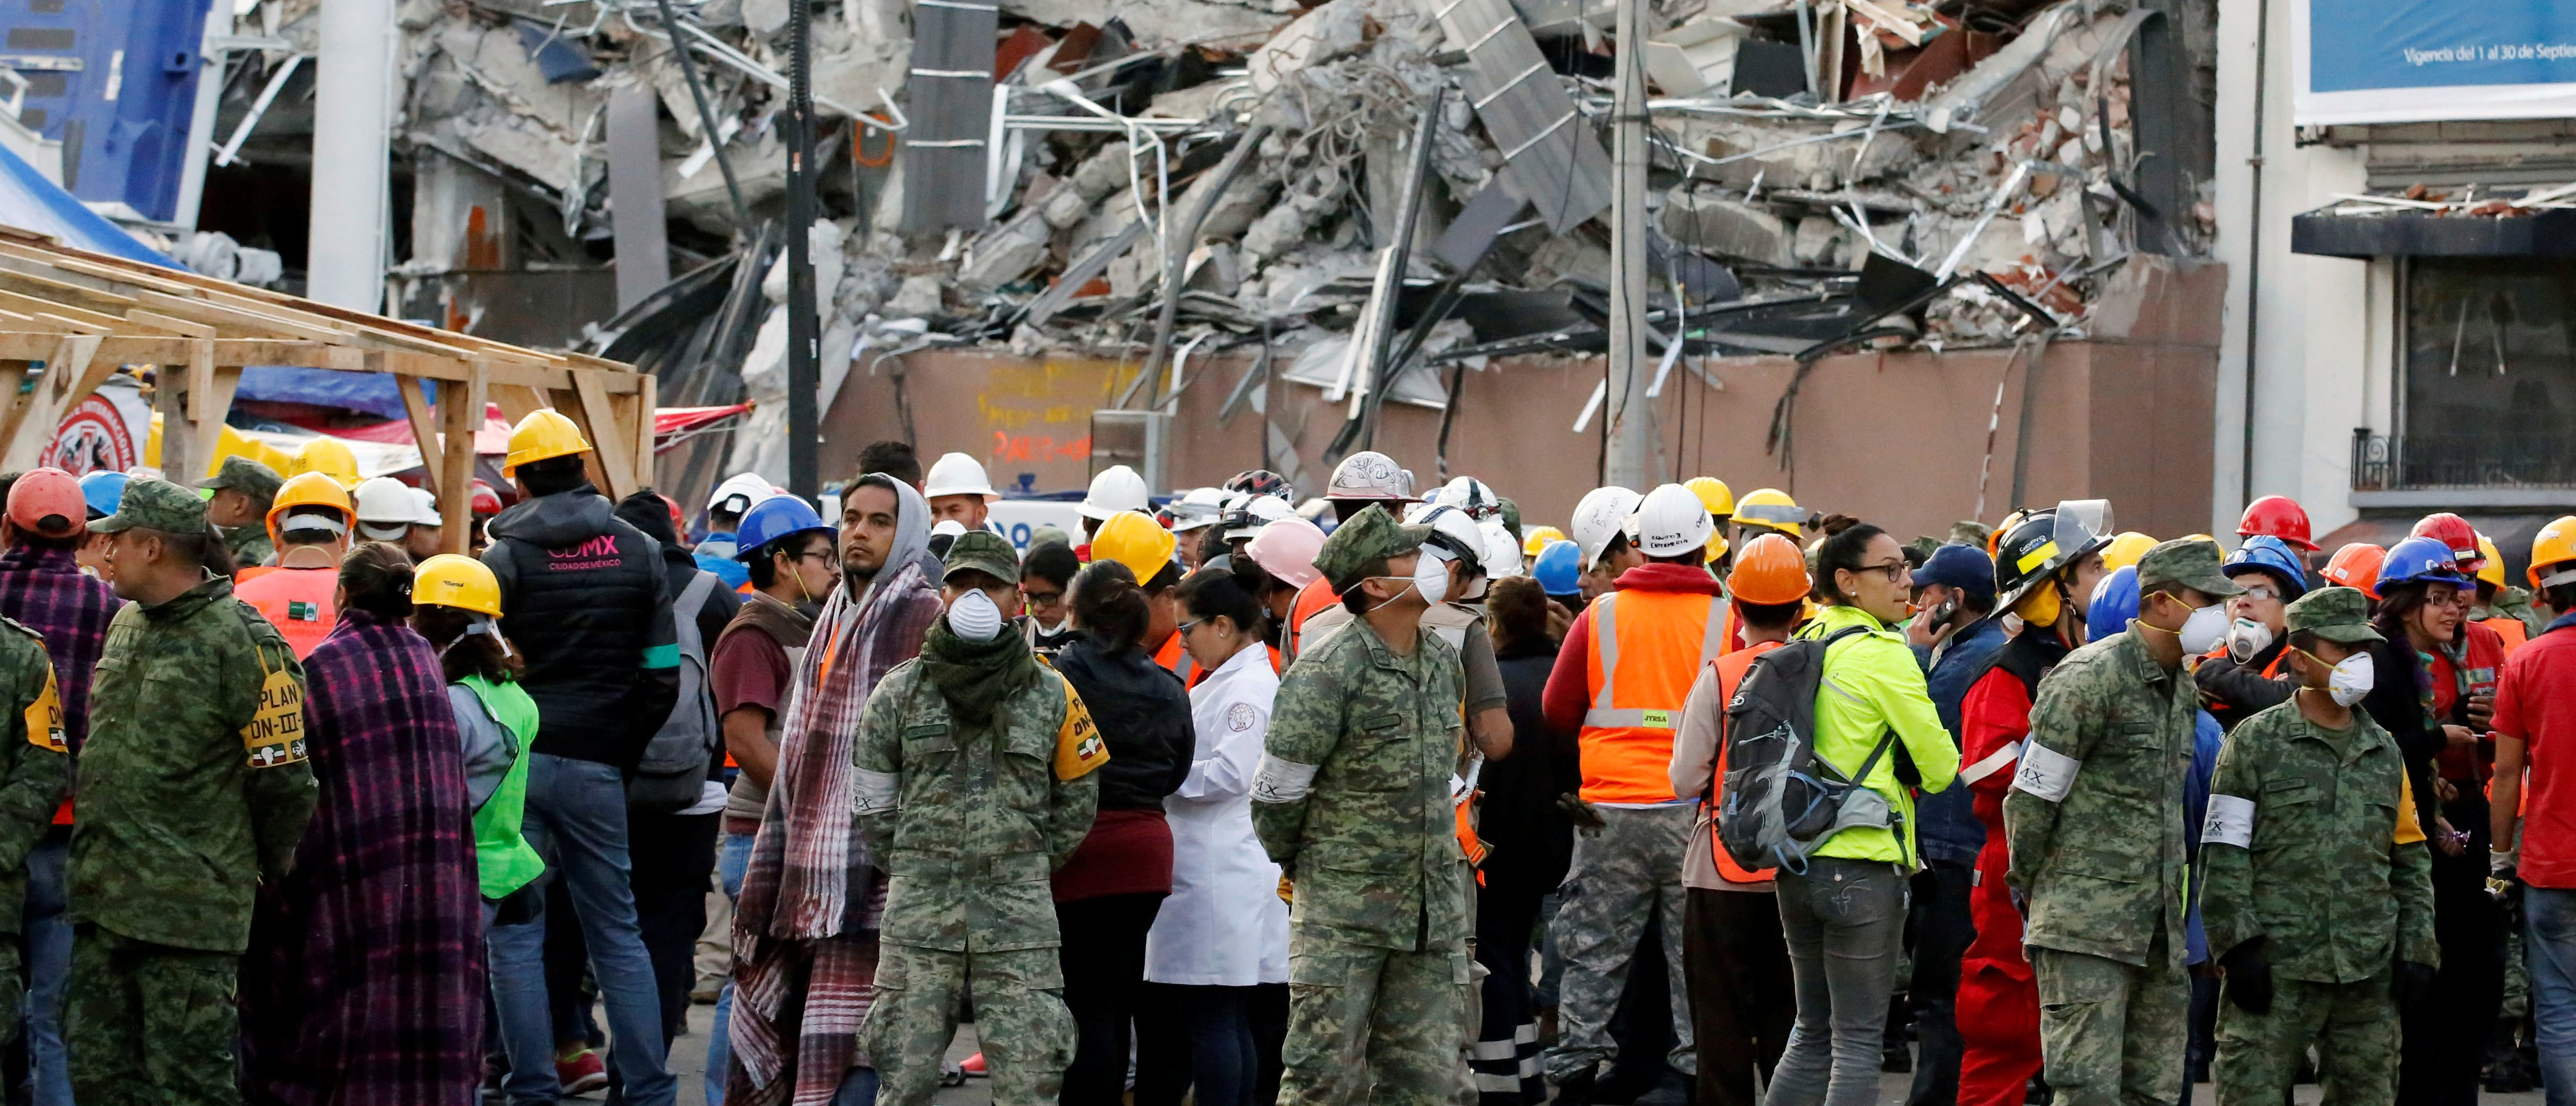 Soldiers and rescue team wait along the street after a tremor was felt in Mexico City, Mexico September 23, 2017. On background is pictured a collapsed building after an earthquake on September 19, 2017. REUTERS/Henry Romero